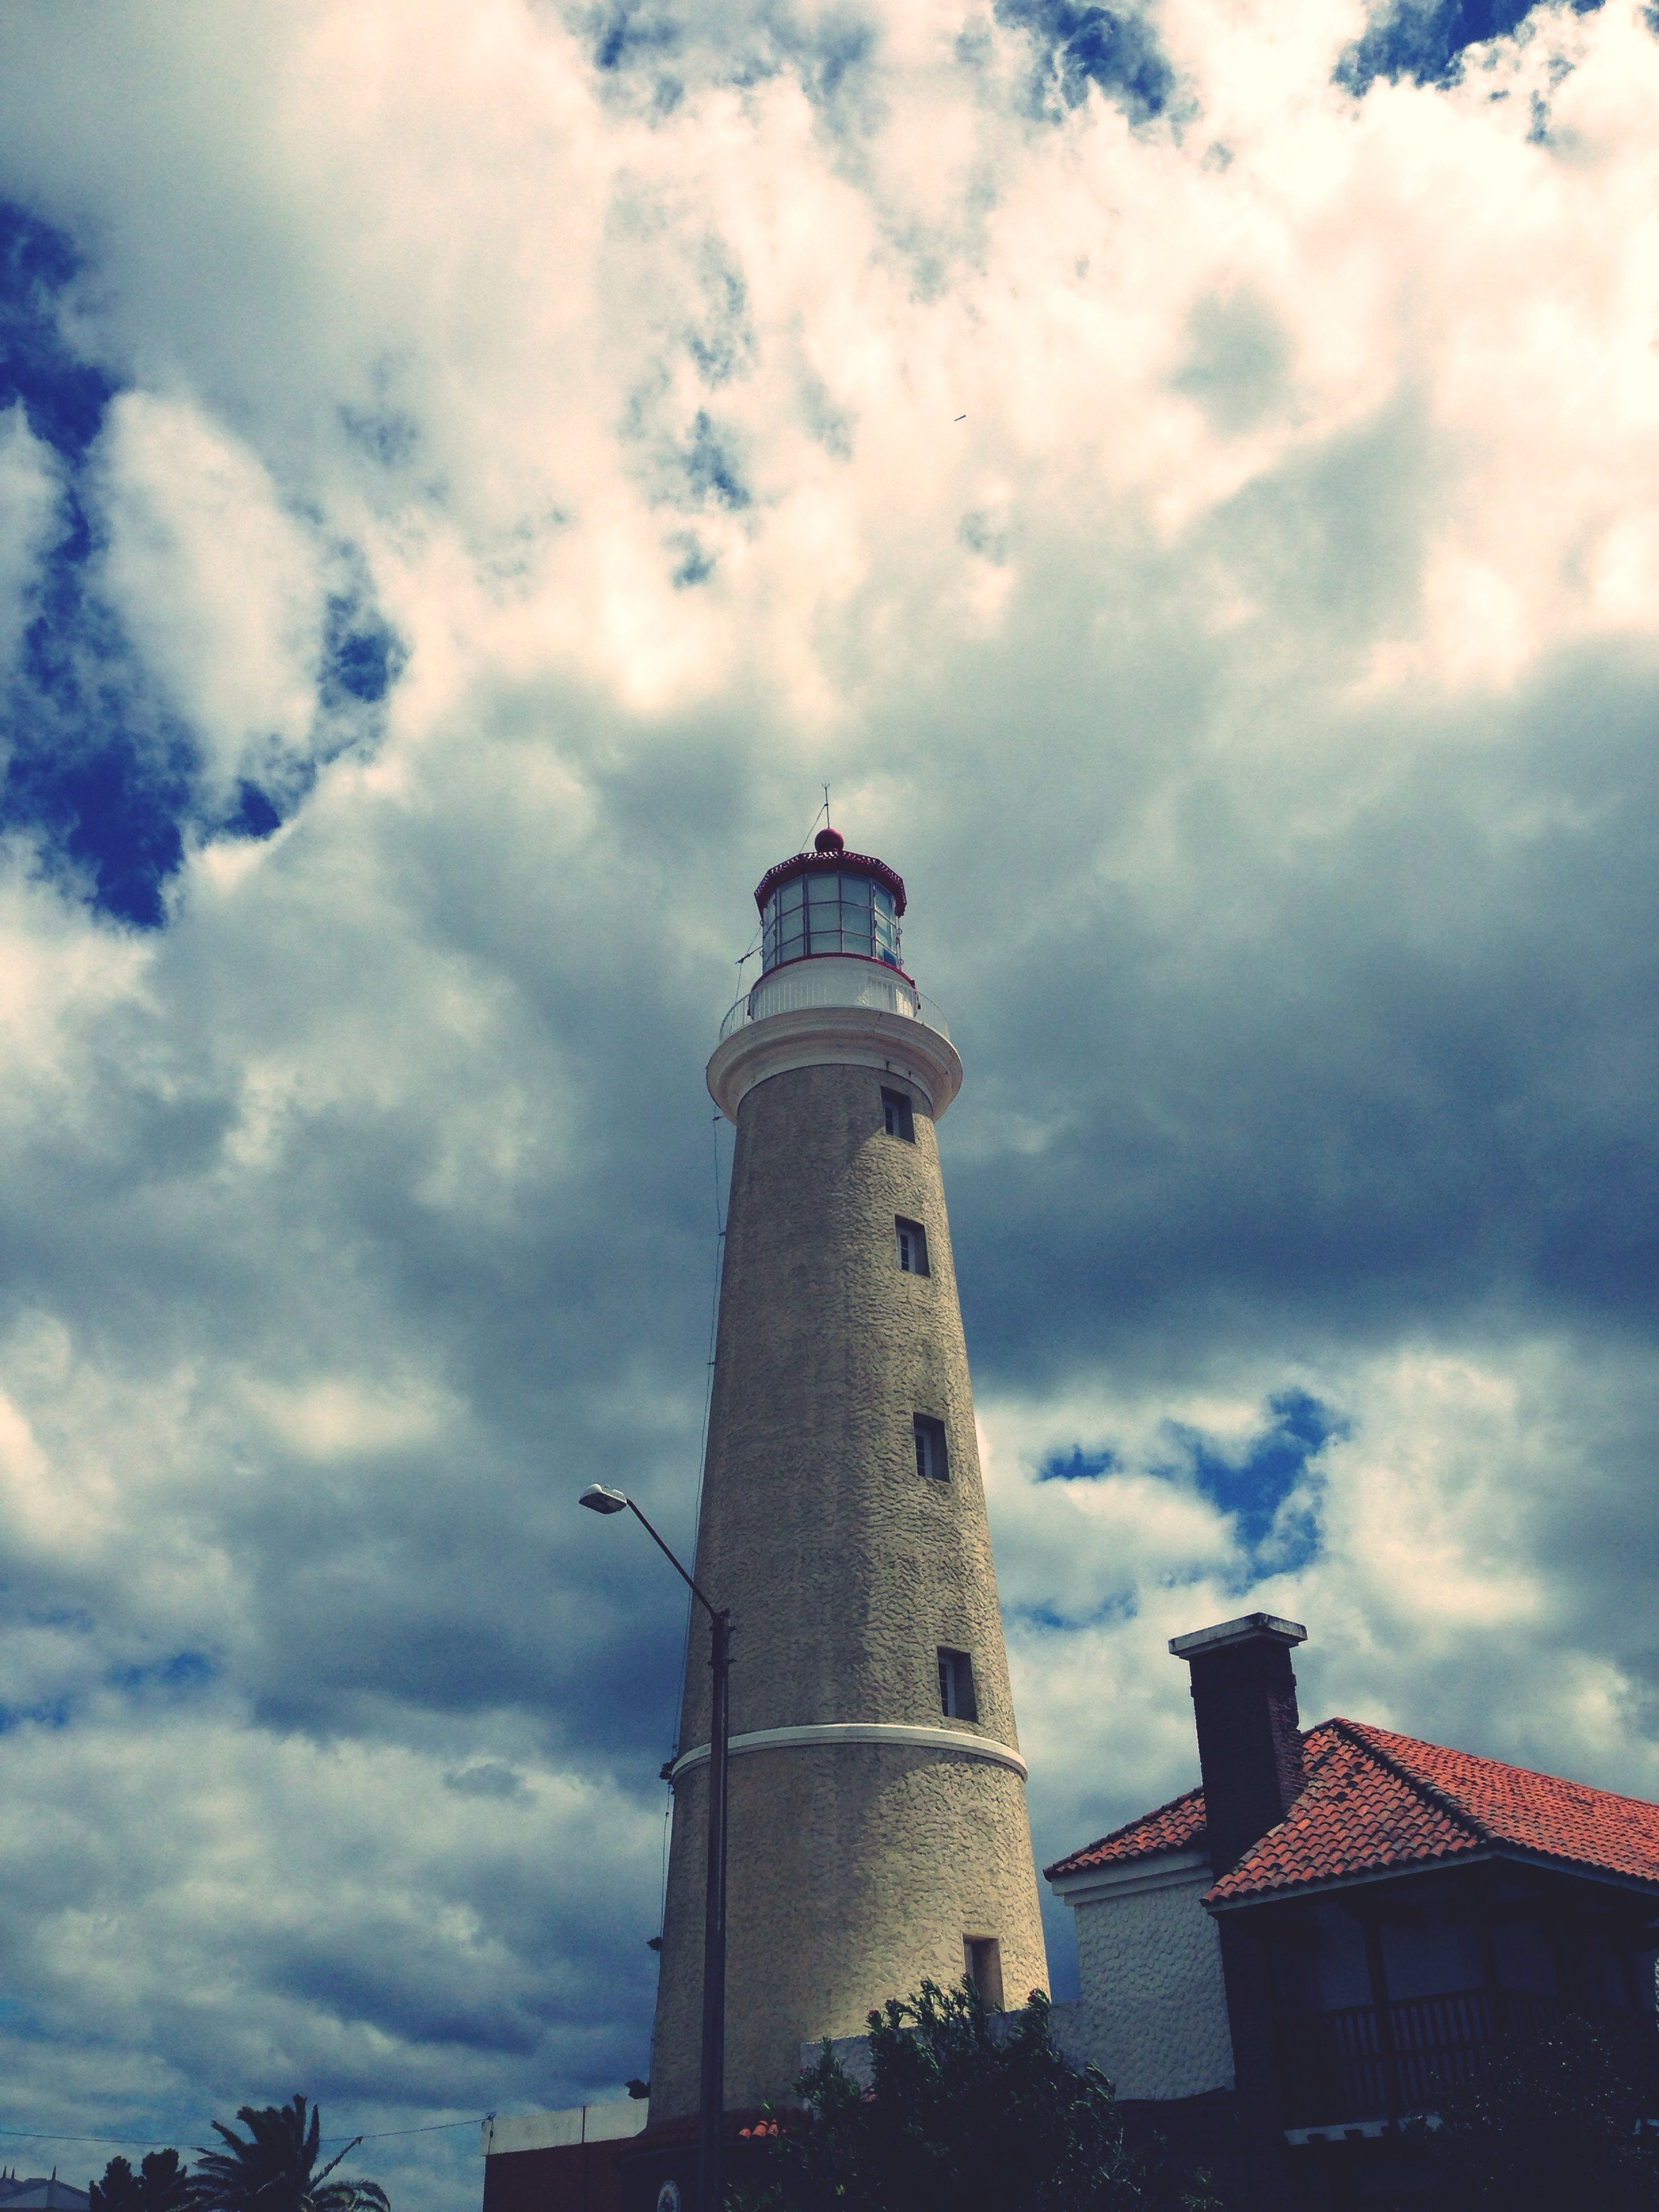 cloud - sky, sky, architecture, tower, low angle view, built structure, building exterior, lighthouse, history, travel destinations, city, no people, day, outdoors, nature